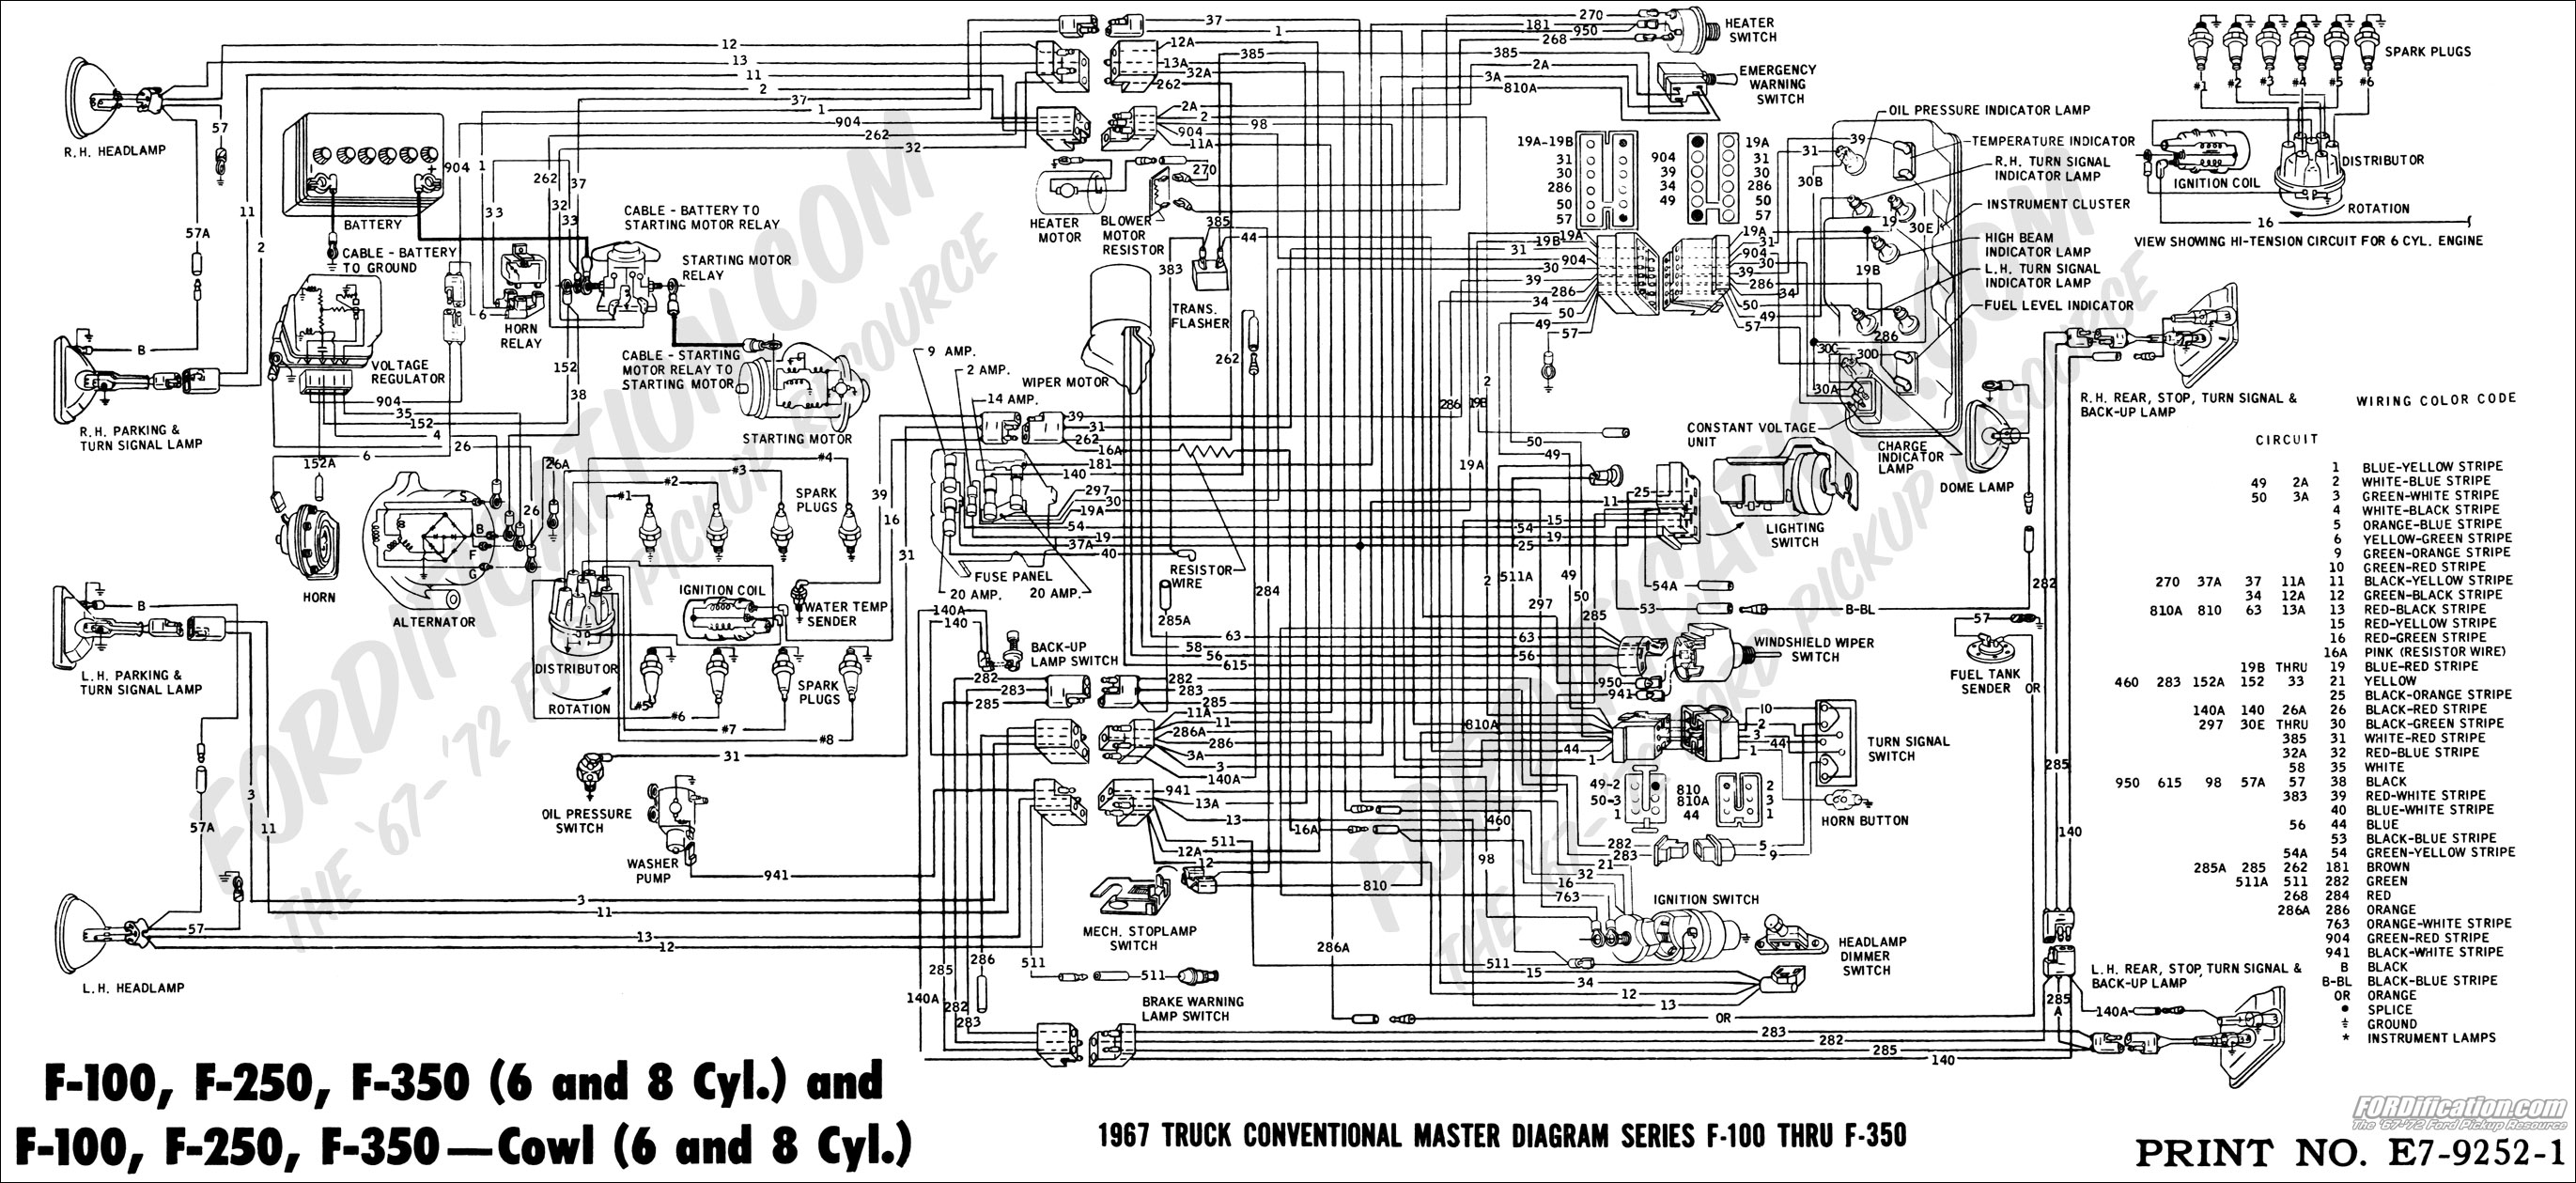 67masterdiagram ford truck technical drawings and schematics section h wiring ford truck wiring schematics at bayanpartner.co